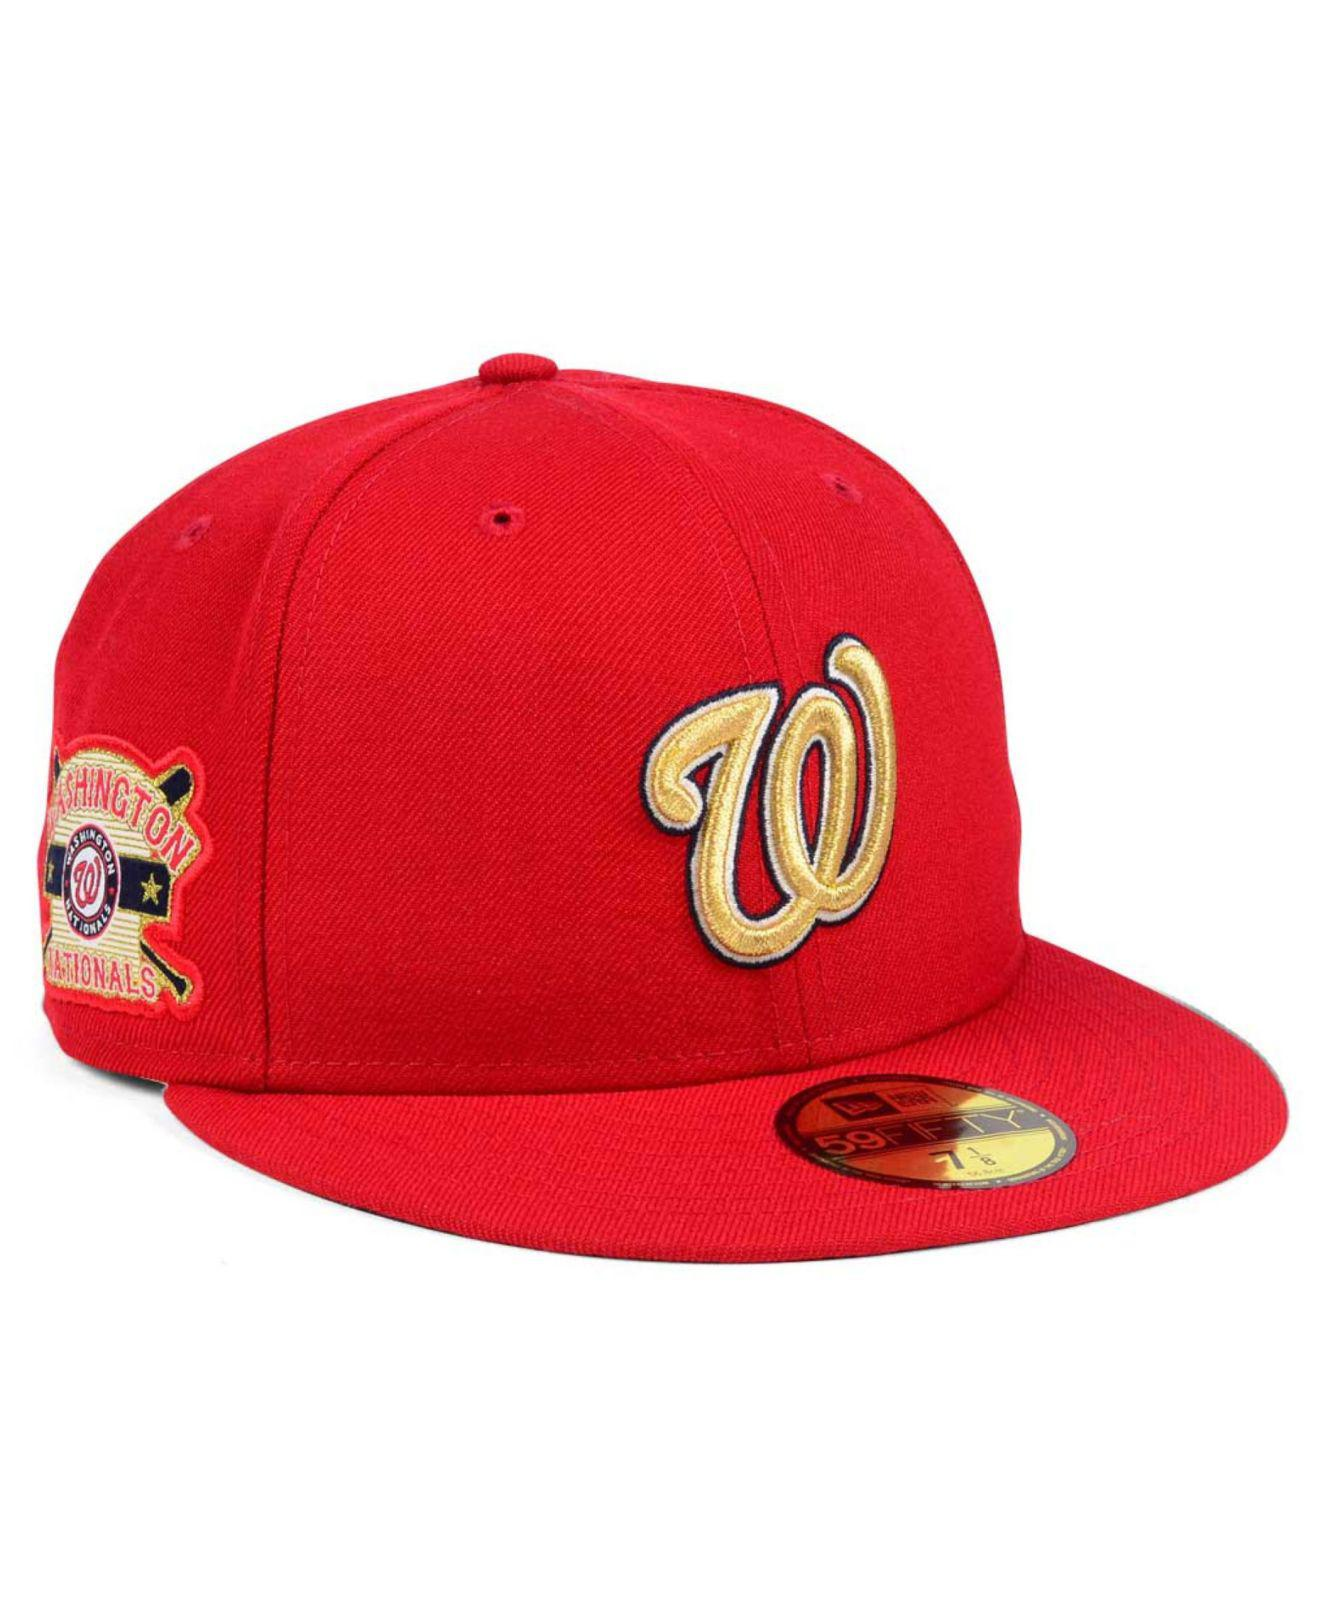 watch a425f a390d ... mlb bt 9fifty snapback cap f9289 0027f  usa lyst ktz washington  nationals exclusive gold patch 59fifty cap in 40aac a89b2